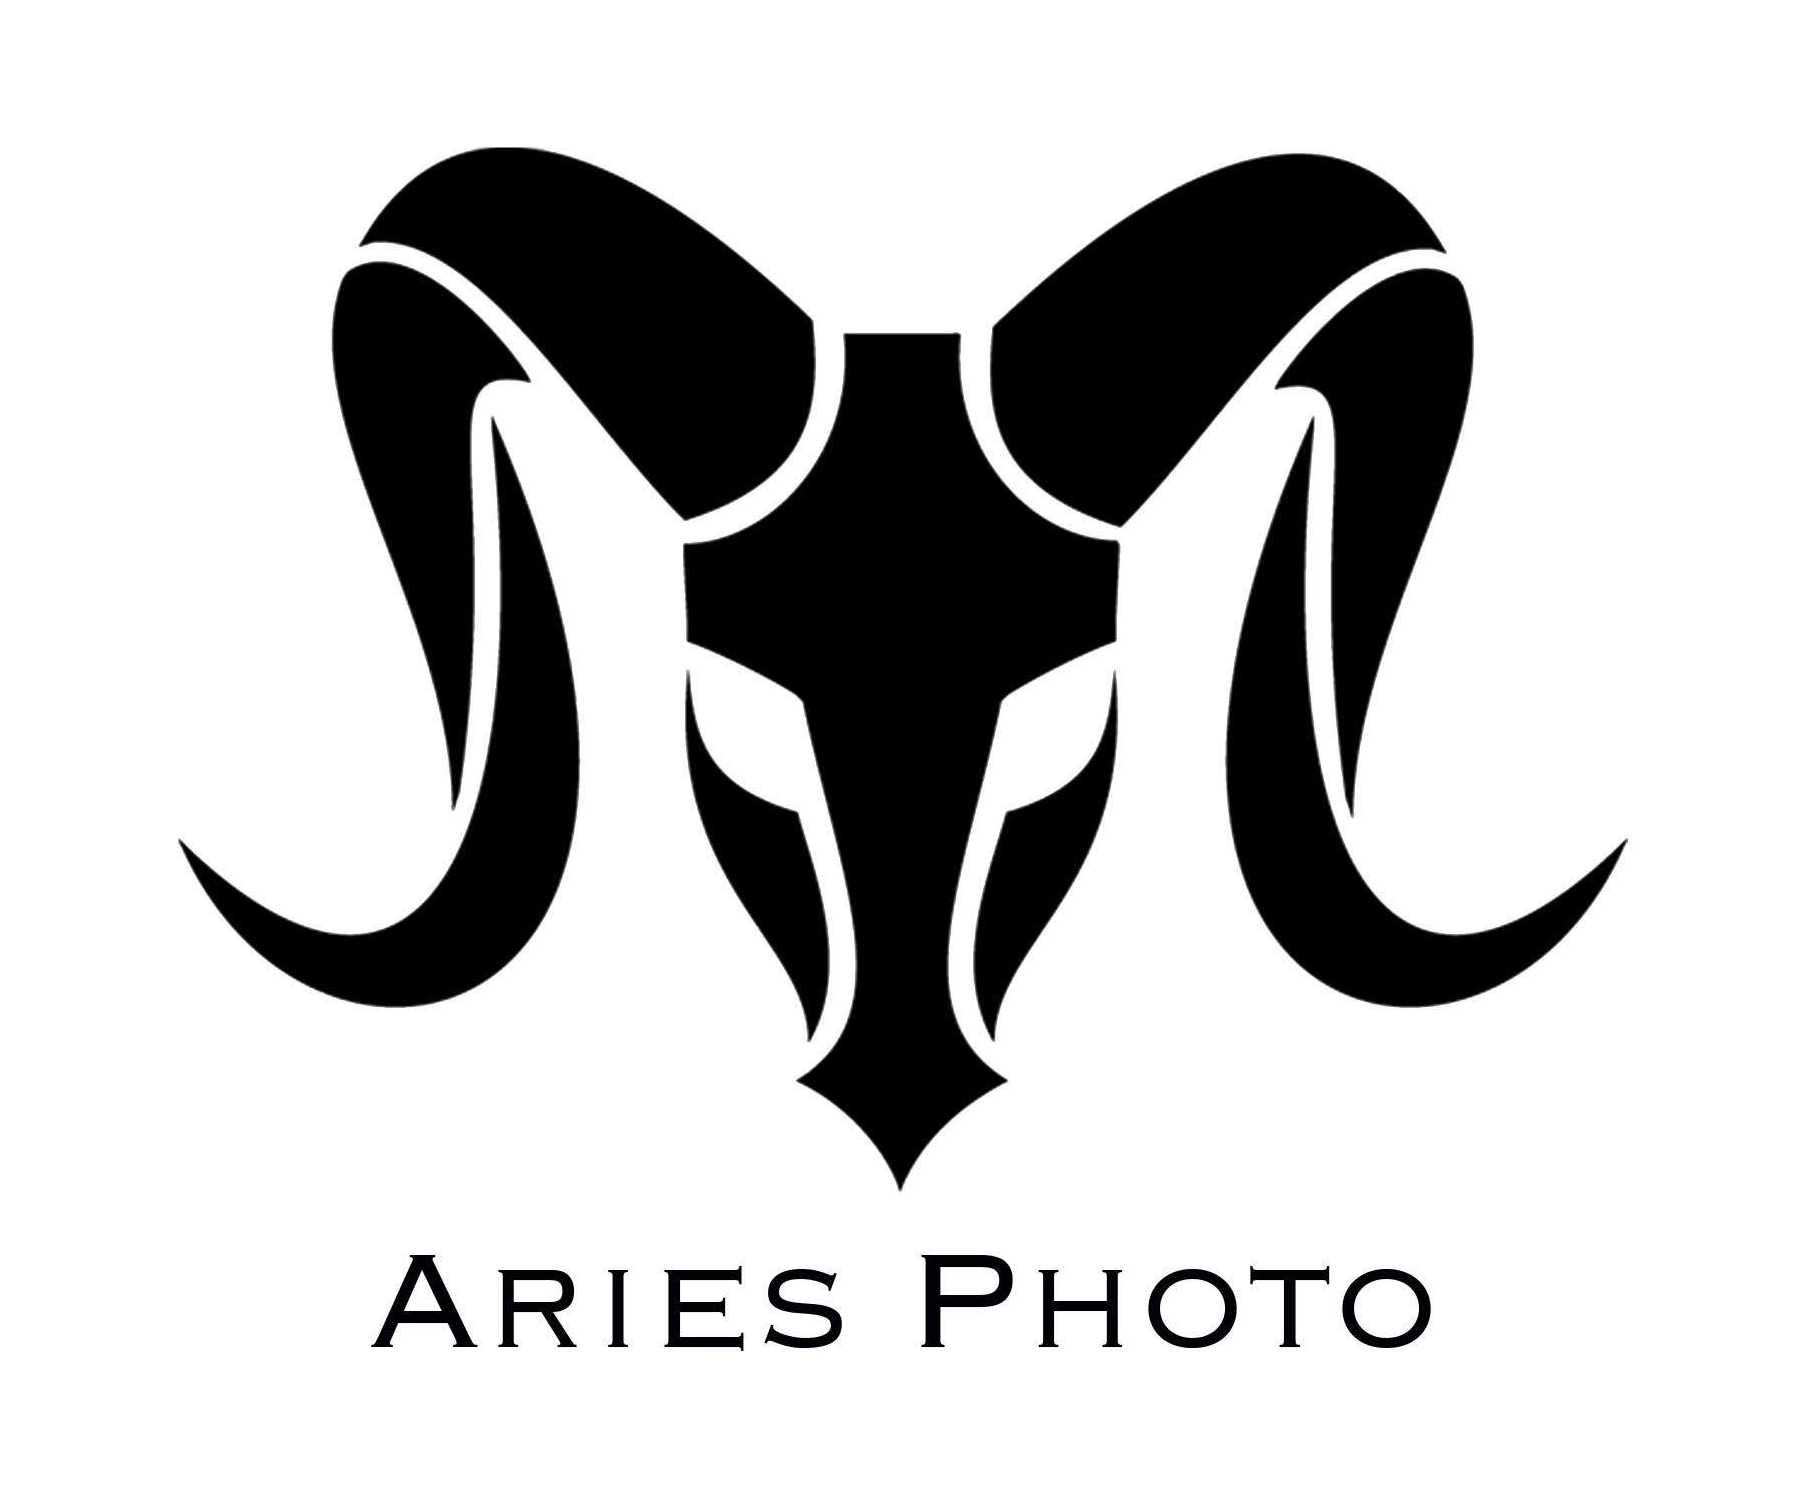 Aries Photo Resized.jpg